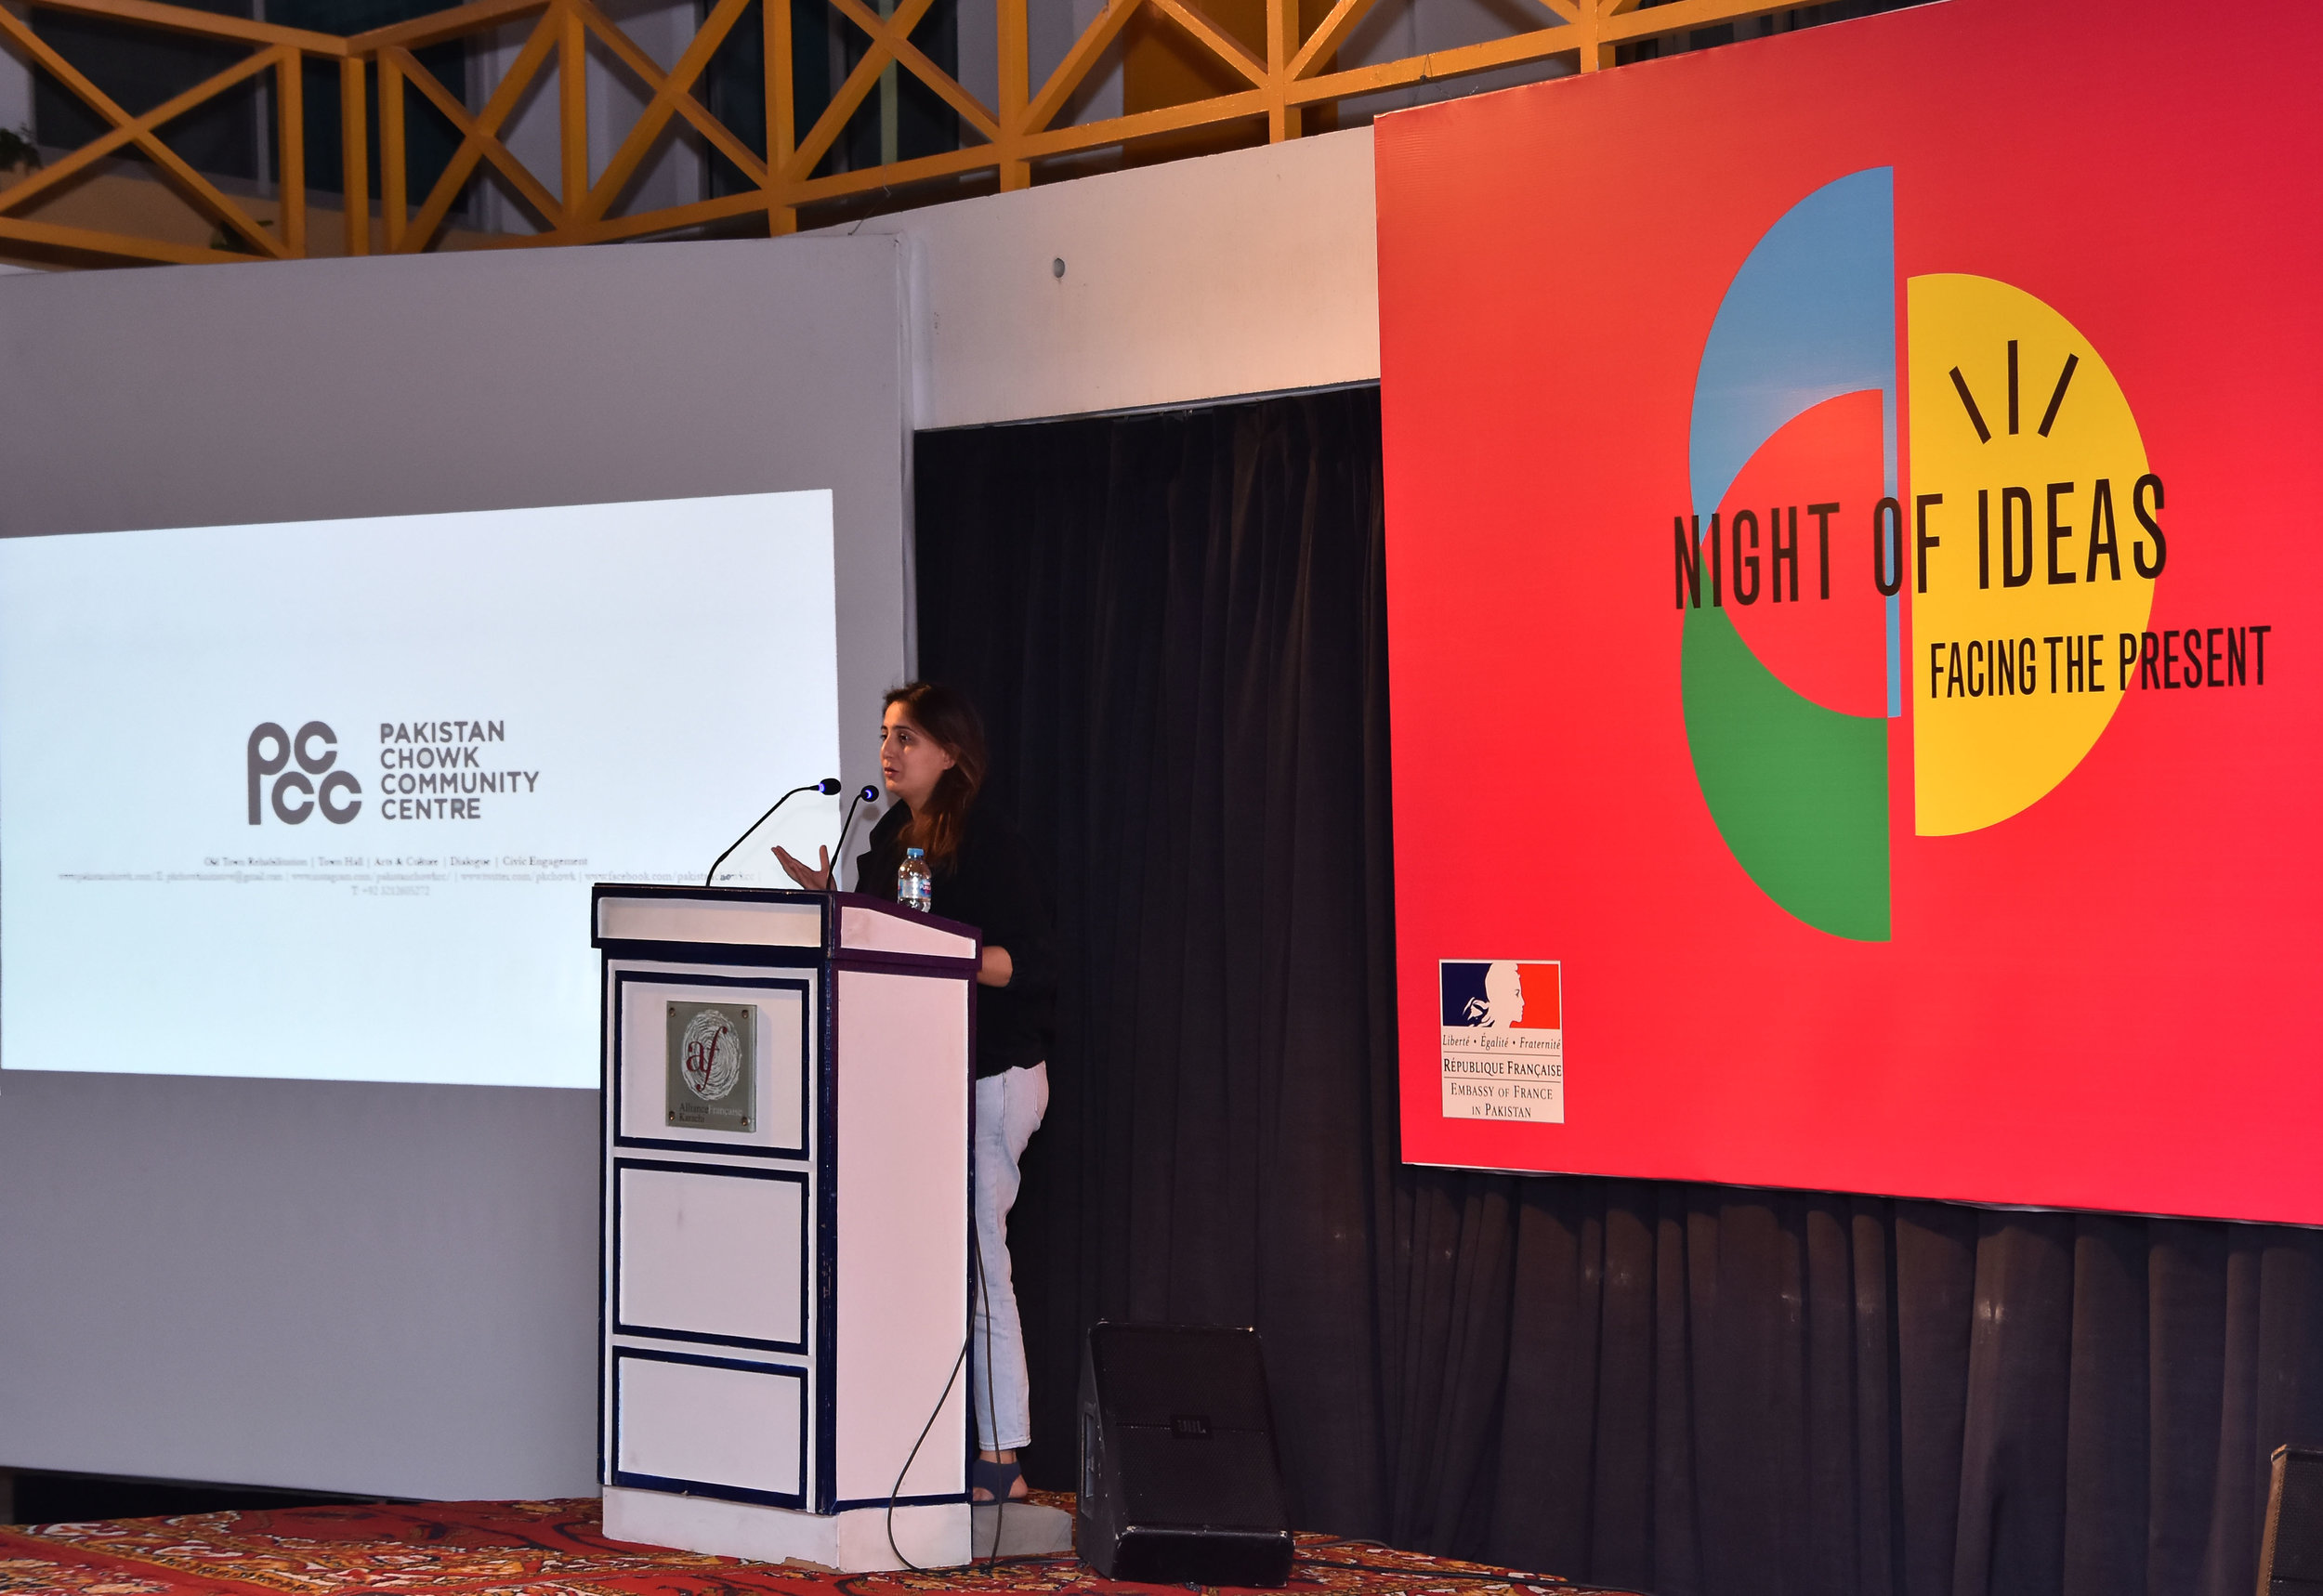 Facing the Present: Intellectuals vs Artists Session at the Night of Ideas hosted by Alliance Francaise  Speakers: Marvi Mazhar, Arieb Azhar, Niilofer Farrukh, Saima Zaidi, Sabiha Sumar and Mohammad Zeeshan  https://images.dawn.com/news/1181818/this-talk-in-karachi-pit-artists-against-intellectuals-but-is-that-really-useful